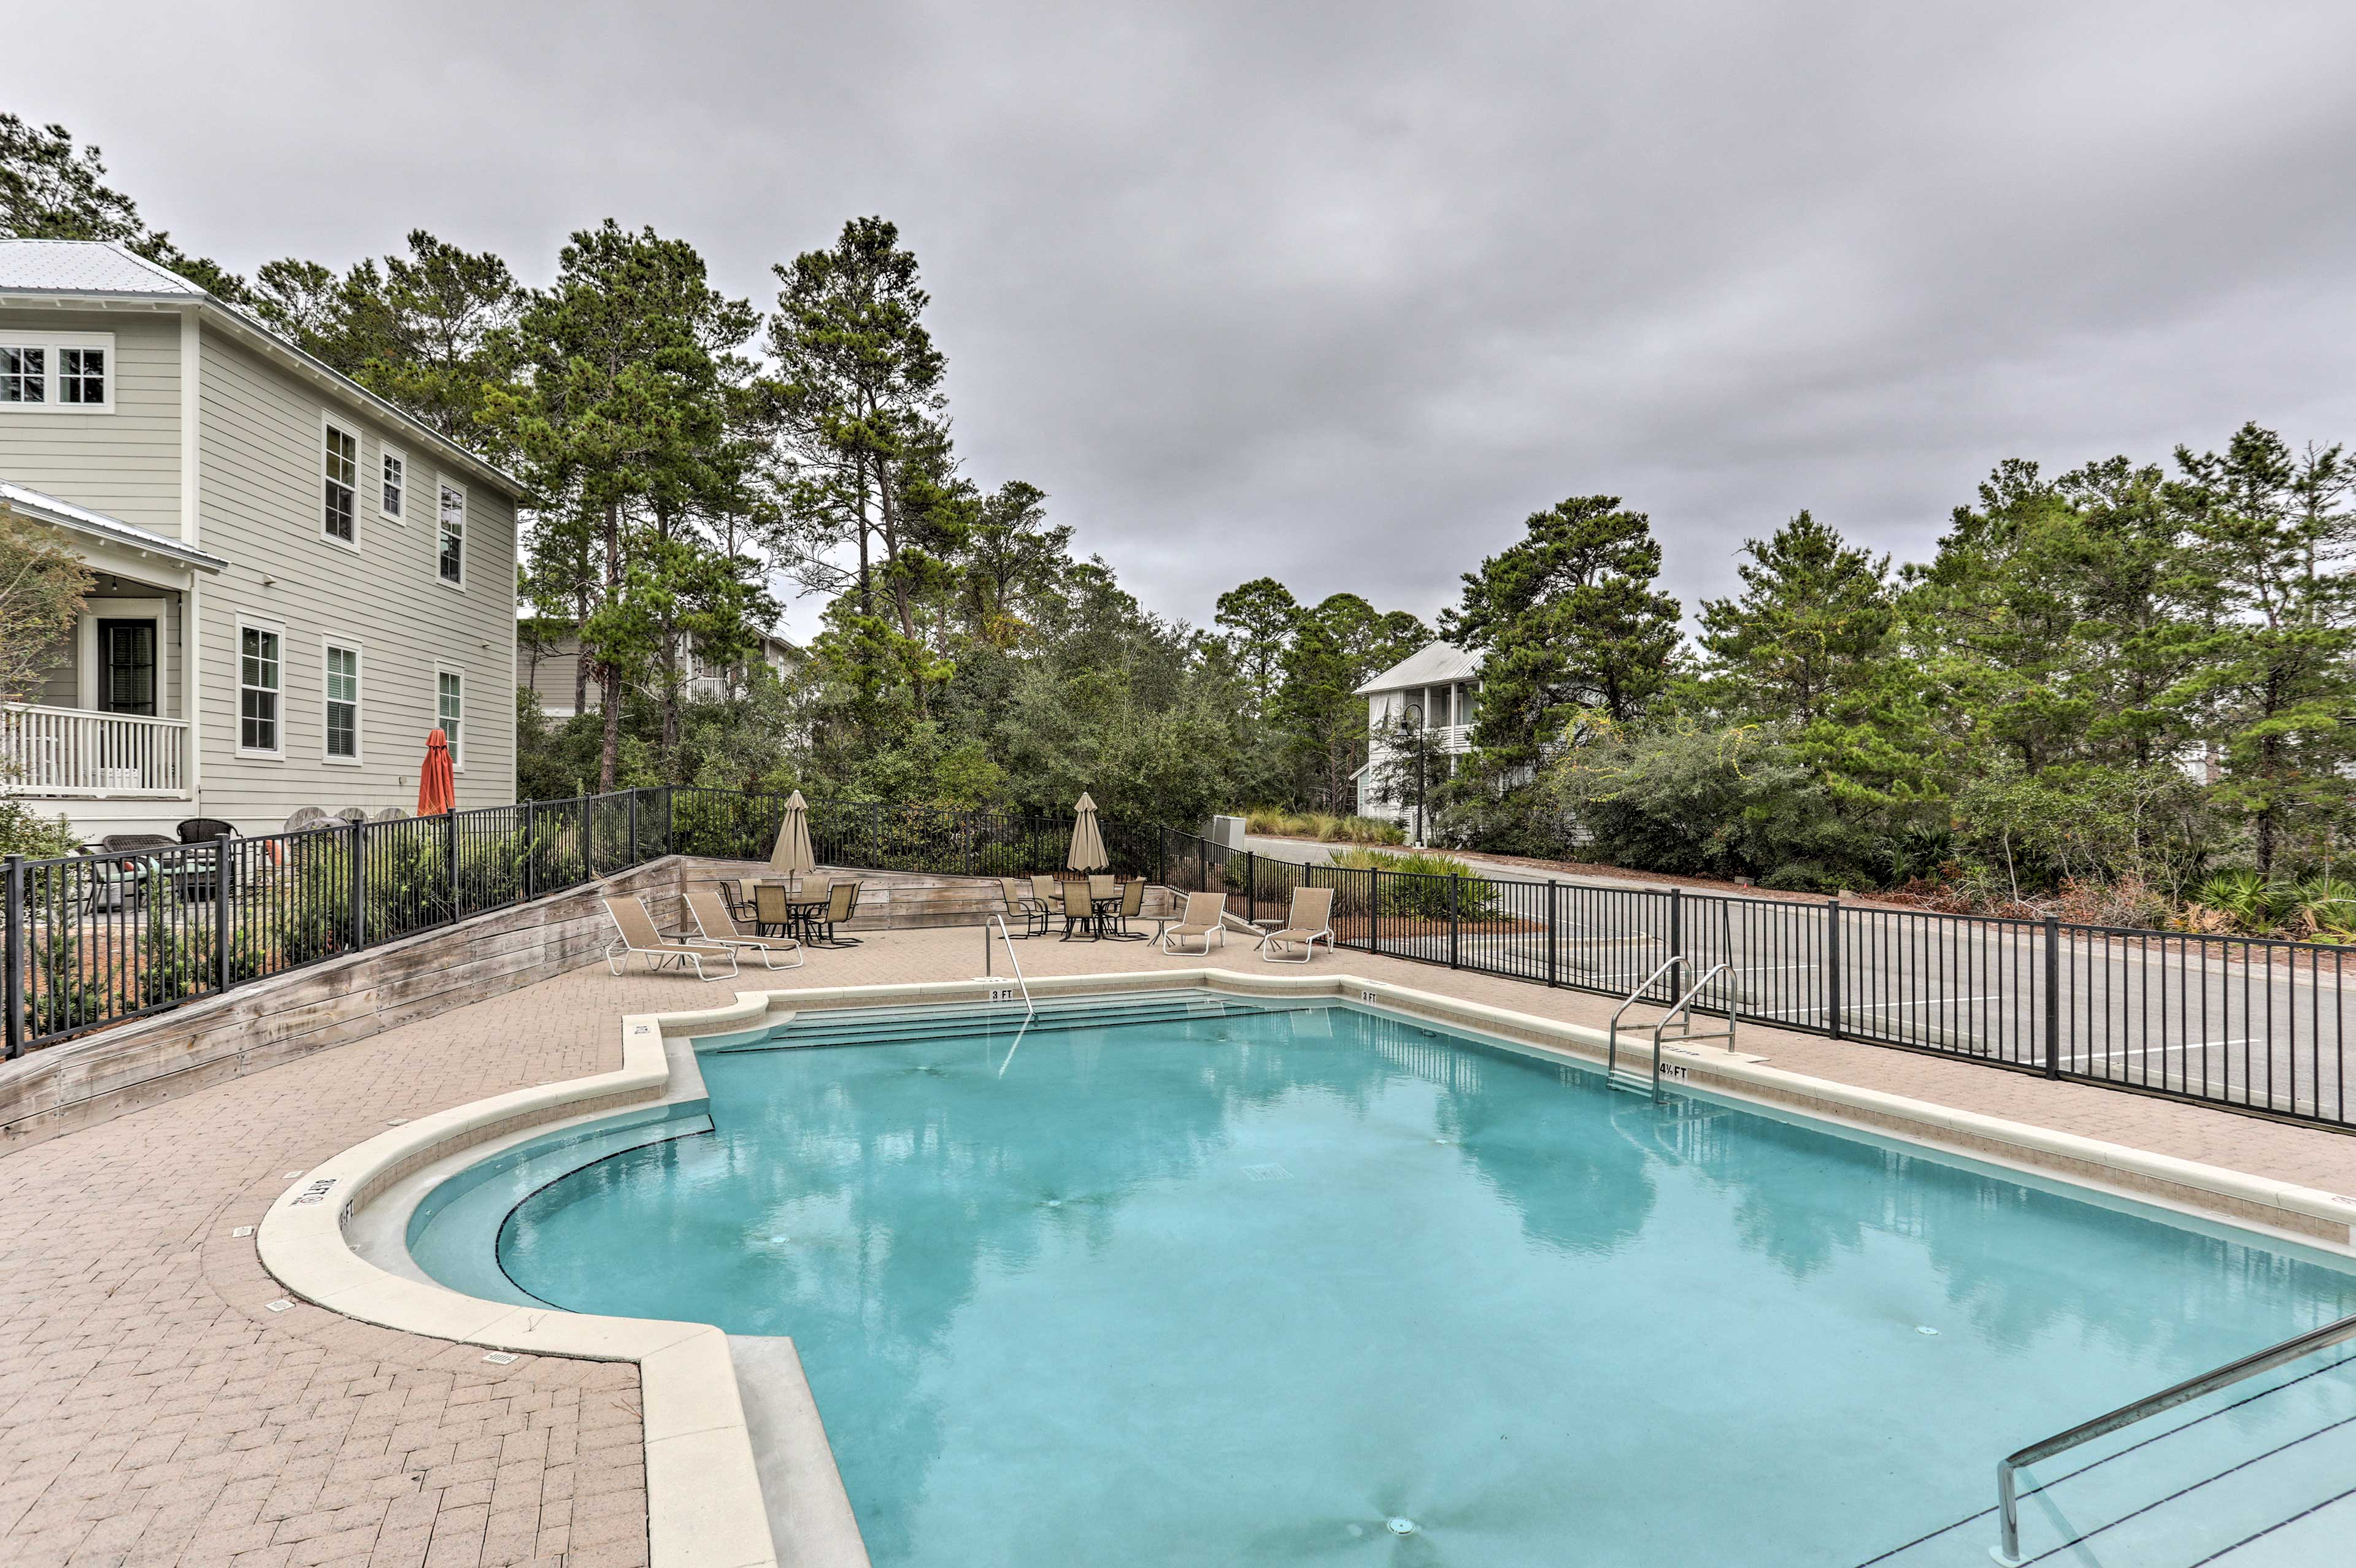 You'll enjoy all the comforts of home, plus access to a community pool.